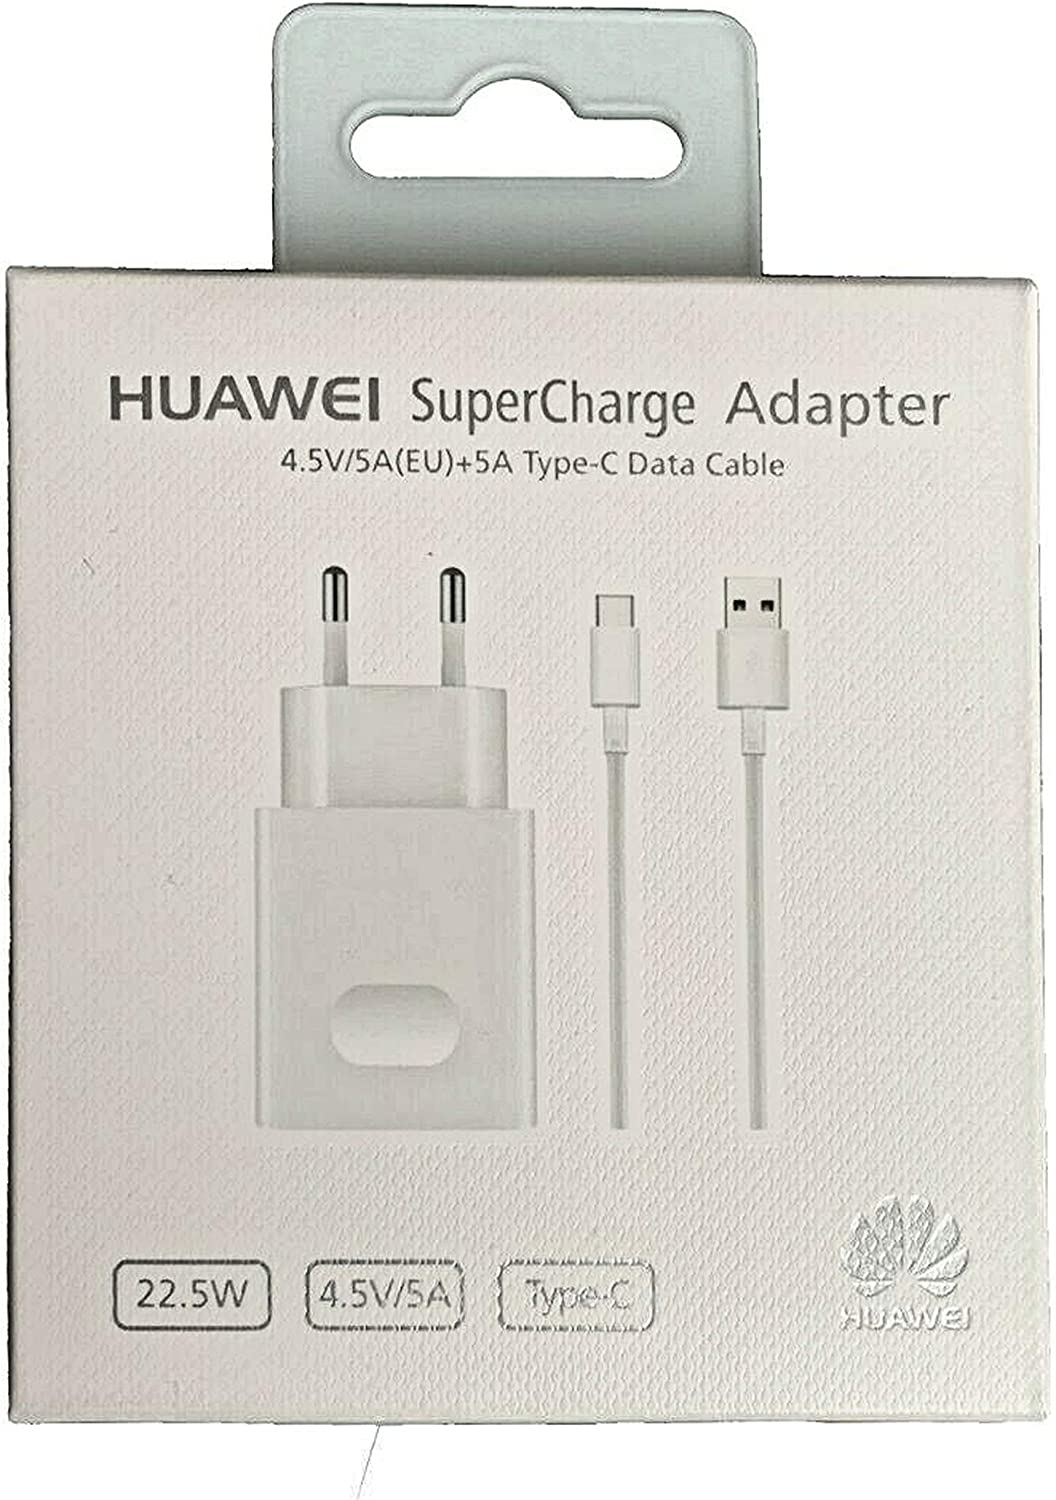 HUAWEI CARICABATTERIE SUPERCHARGE AP81 + CAVO TYPE C 5A MATE